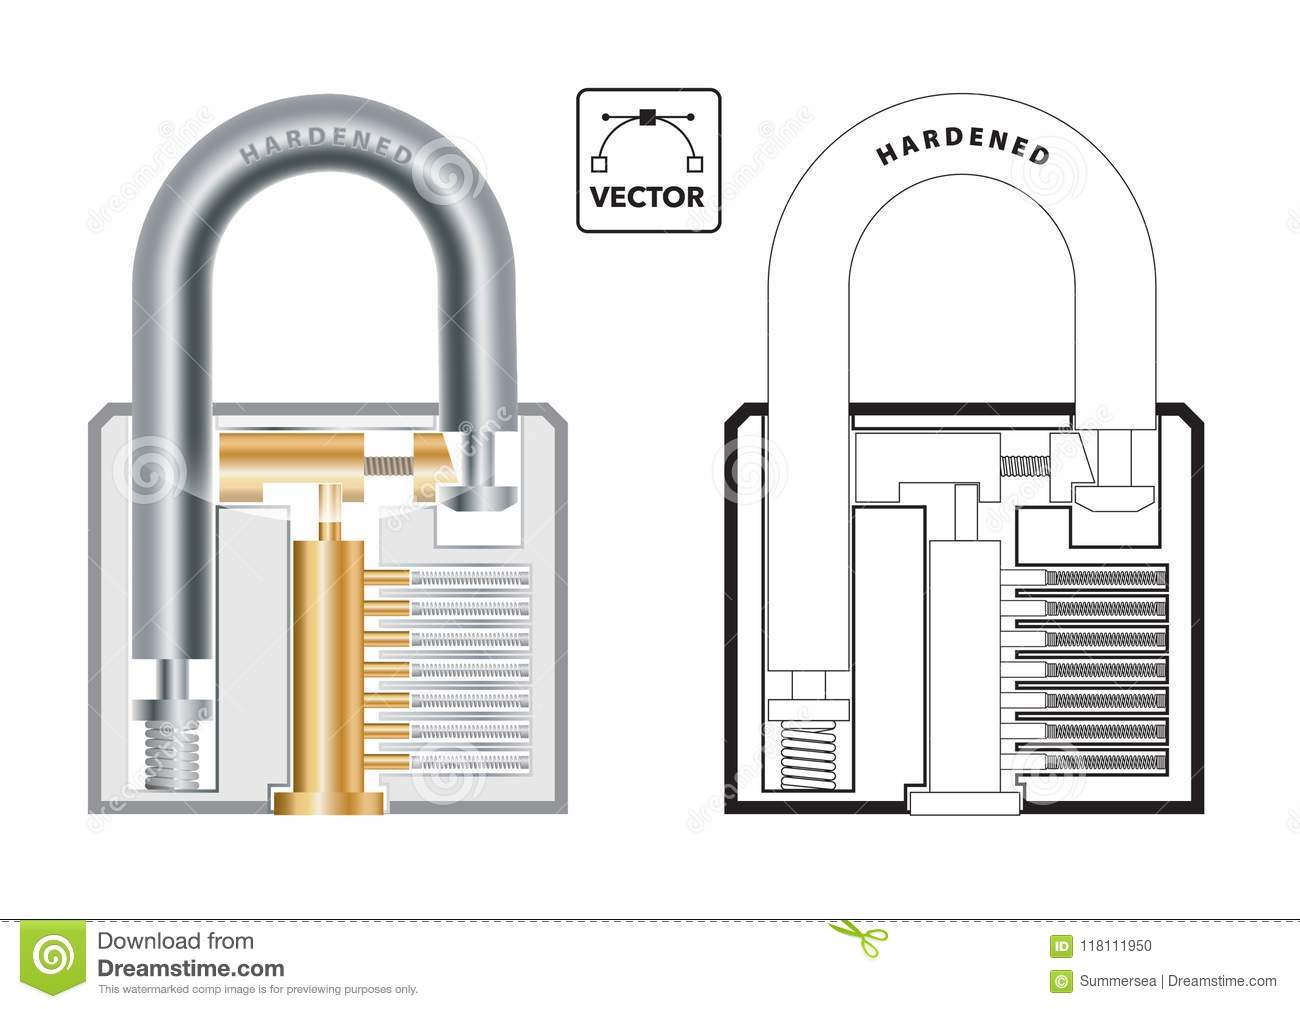 padlock diagram wiring diagram Padlock Diagram padlock diagram, schematic, and image 05